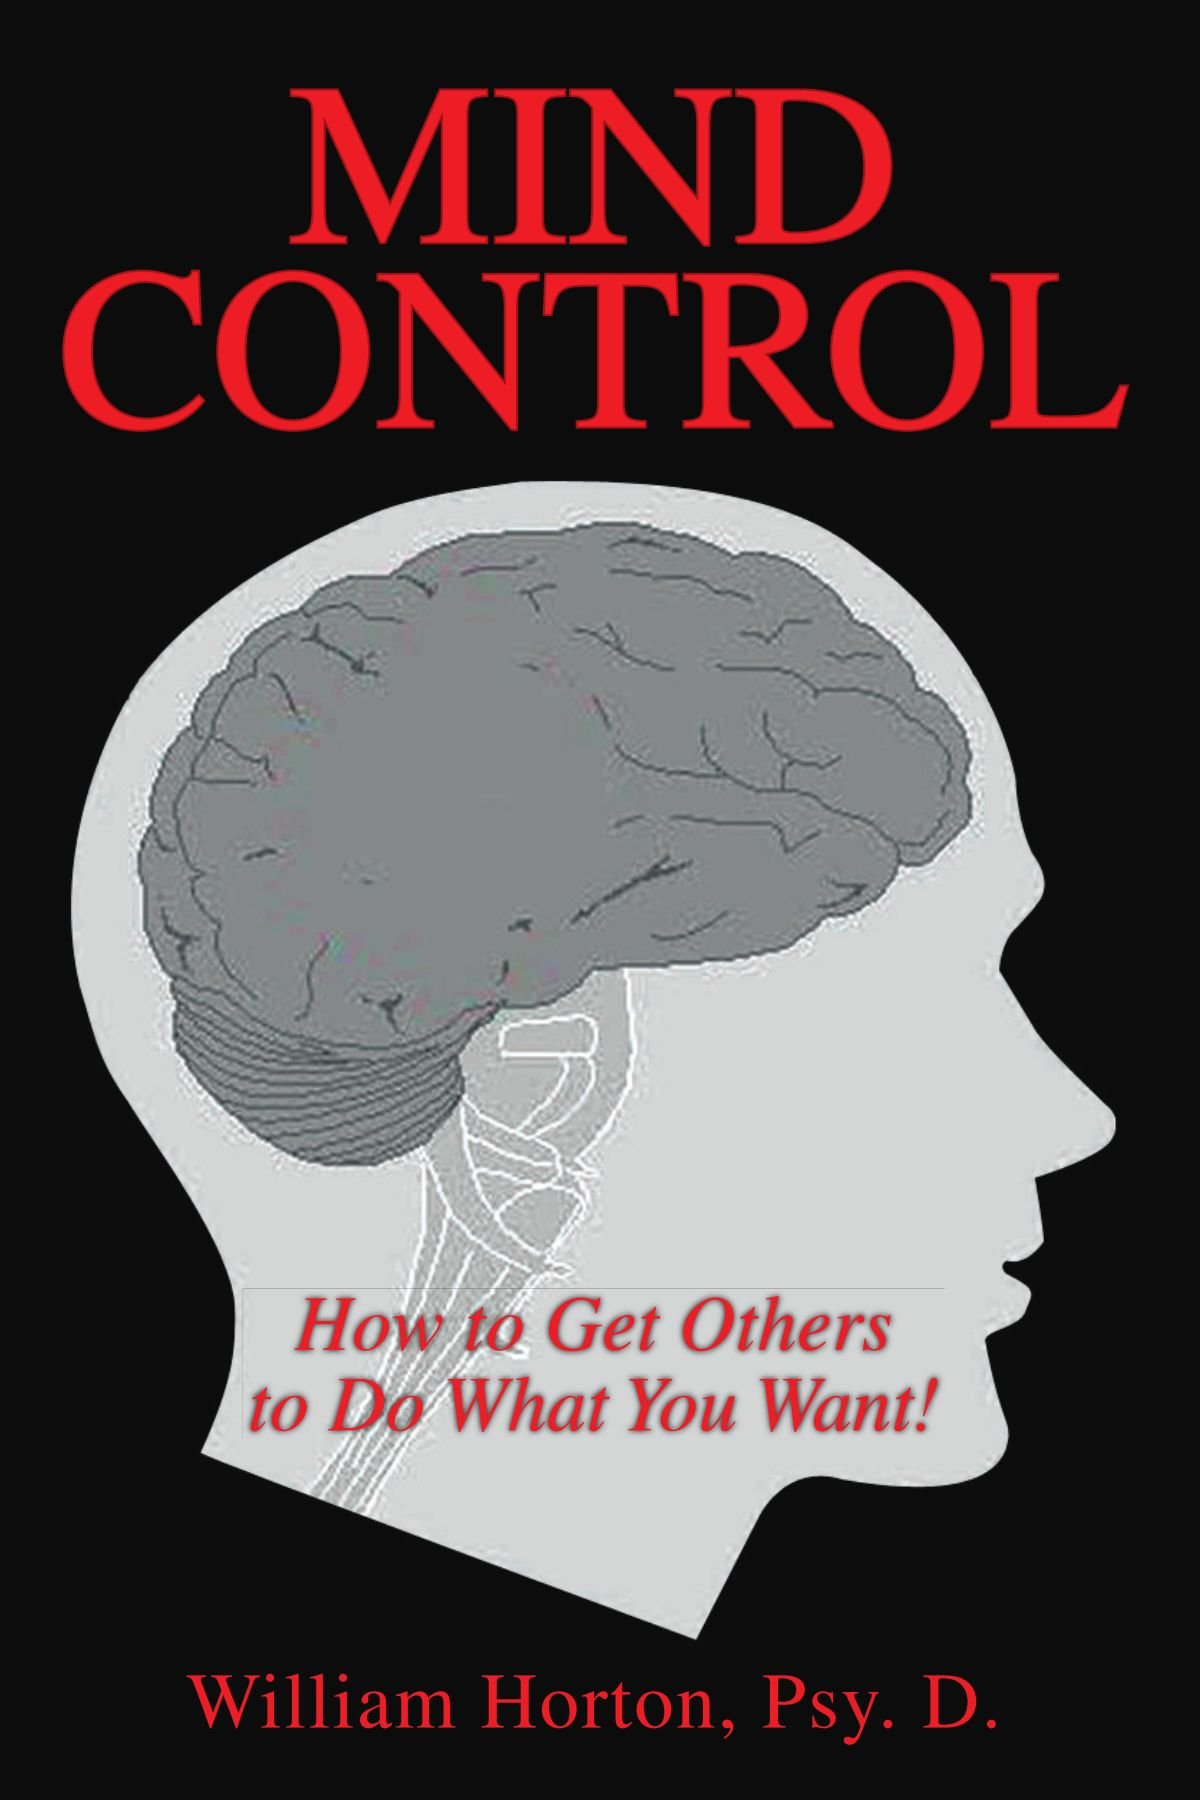 Mind Control: How to Get Others to Do What You Want: William Horton